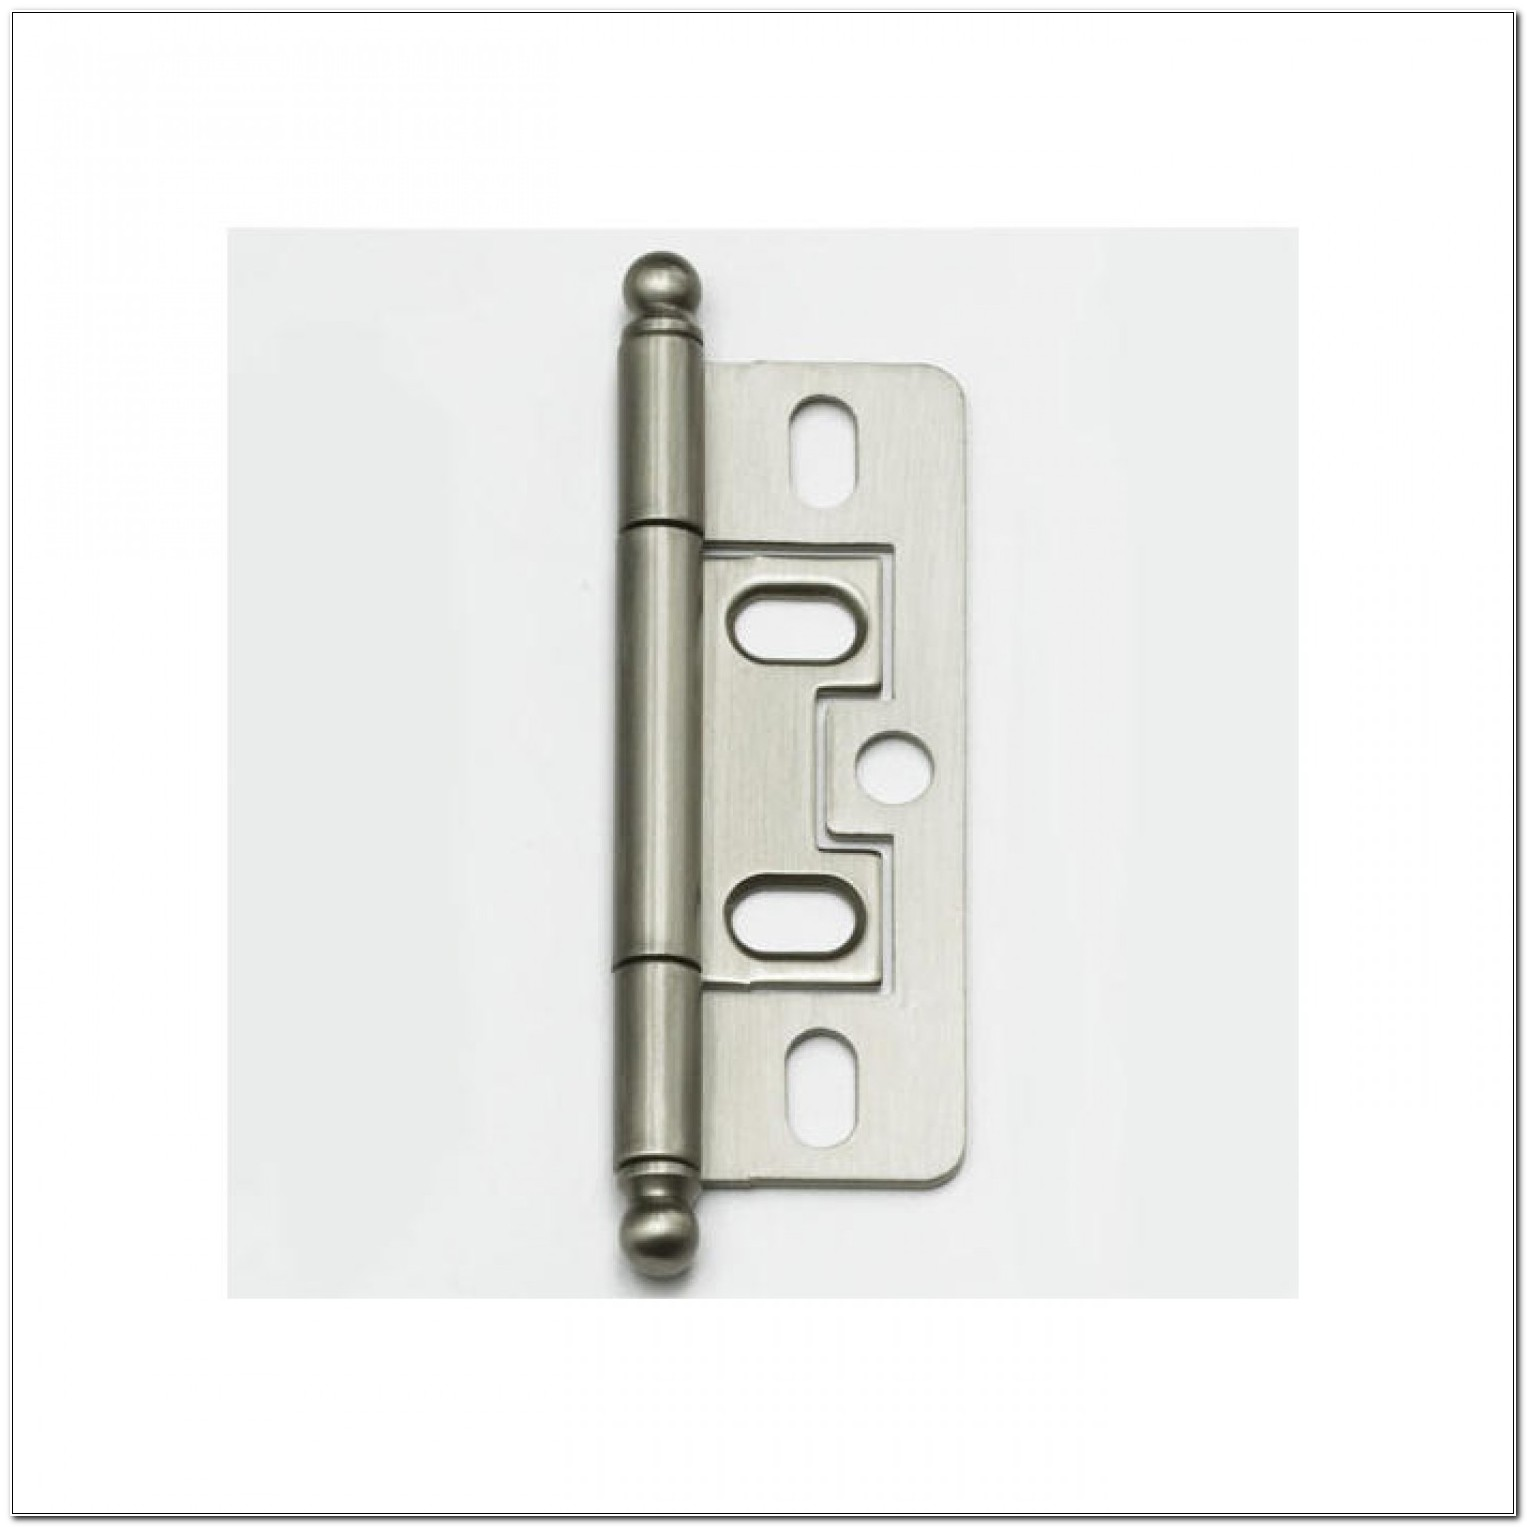 Black Non Mortise Cabinet Hinges